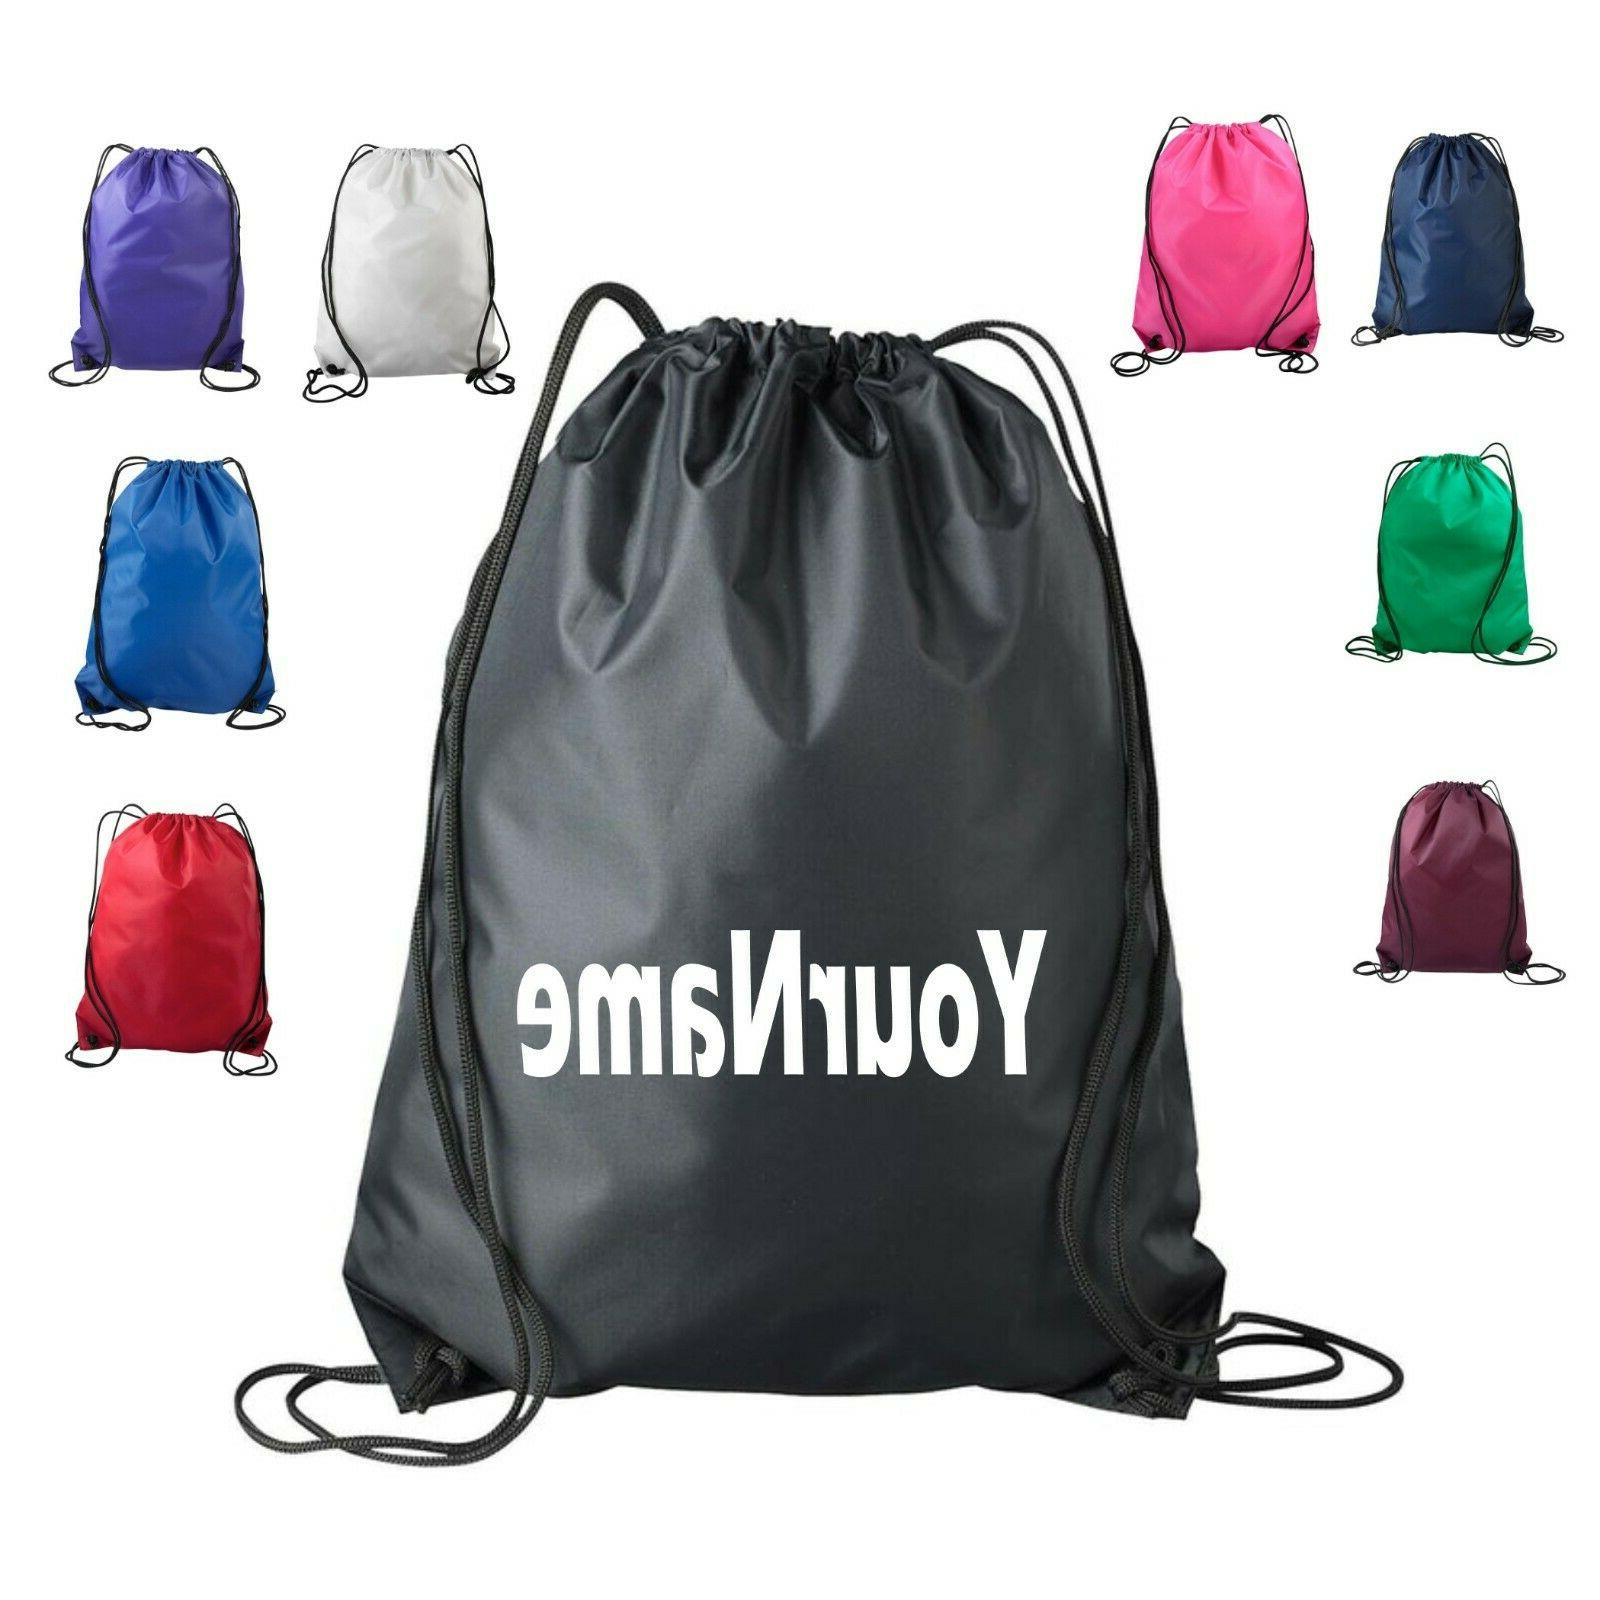 personalized drawstring bag cinch backpack tote pack